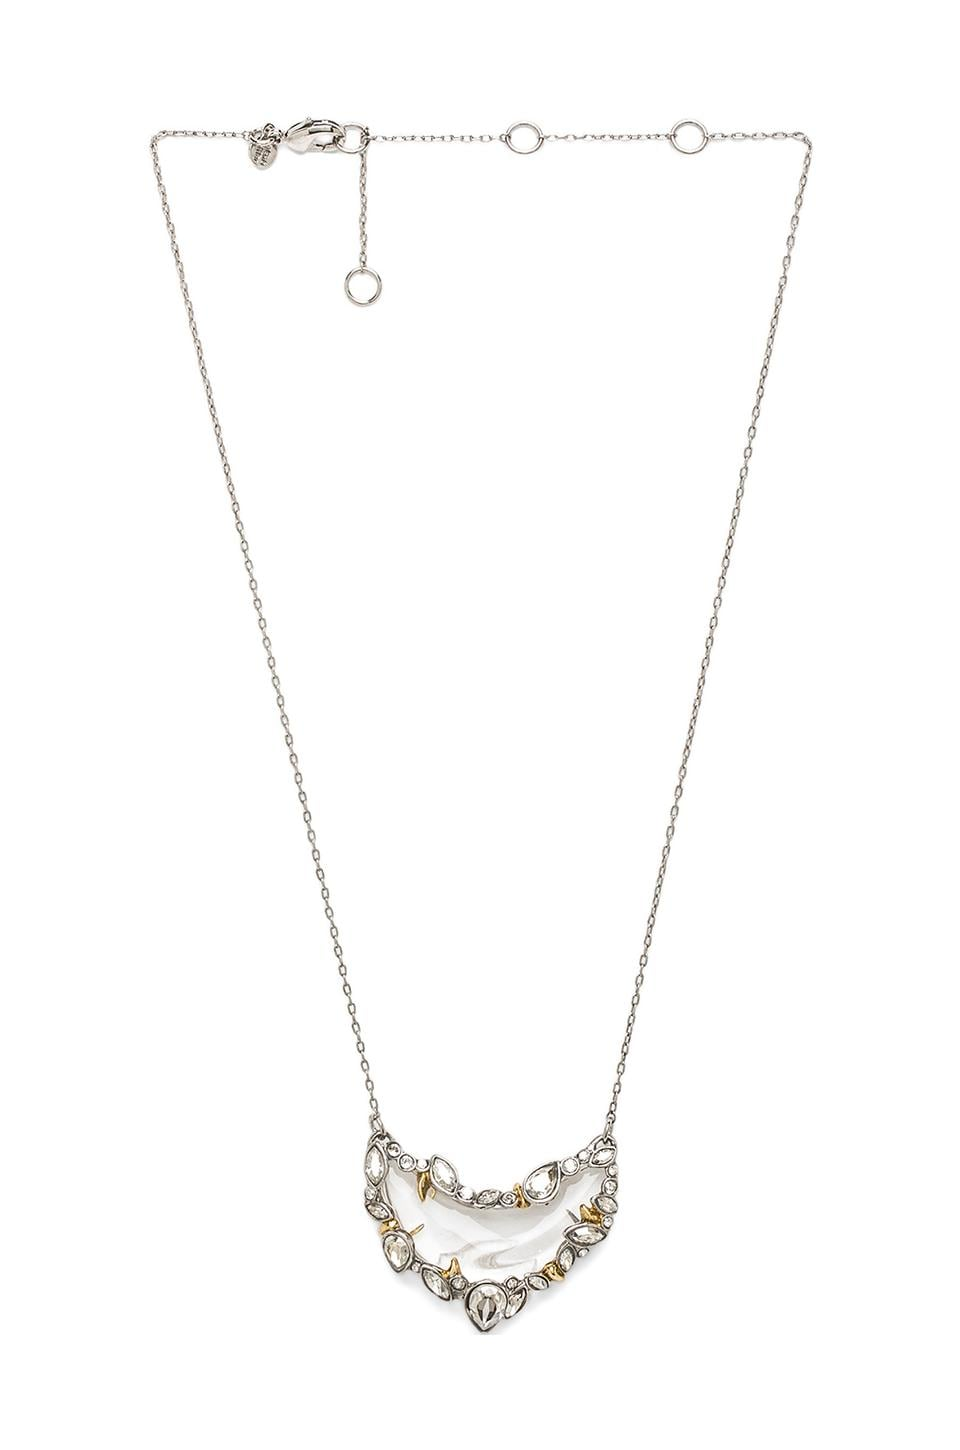 Alexis Bittar Jardin Mystere Jagged Edged Crescent Pendant Necklace in Rhodium & Lucite